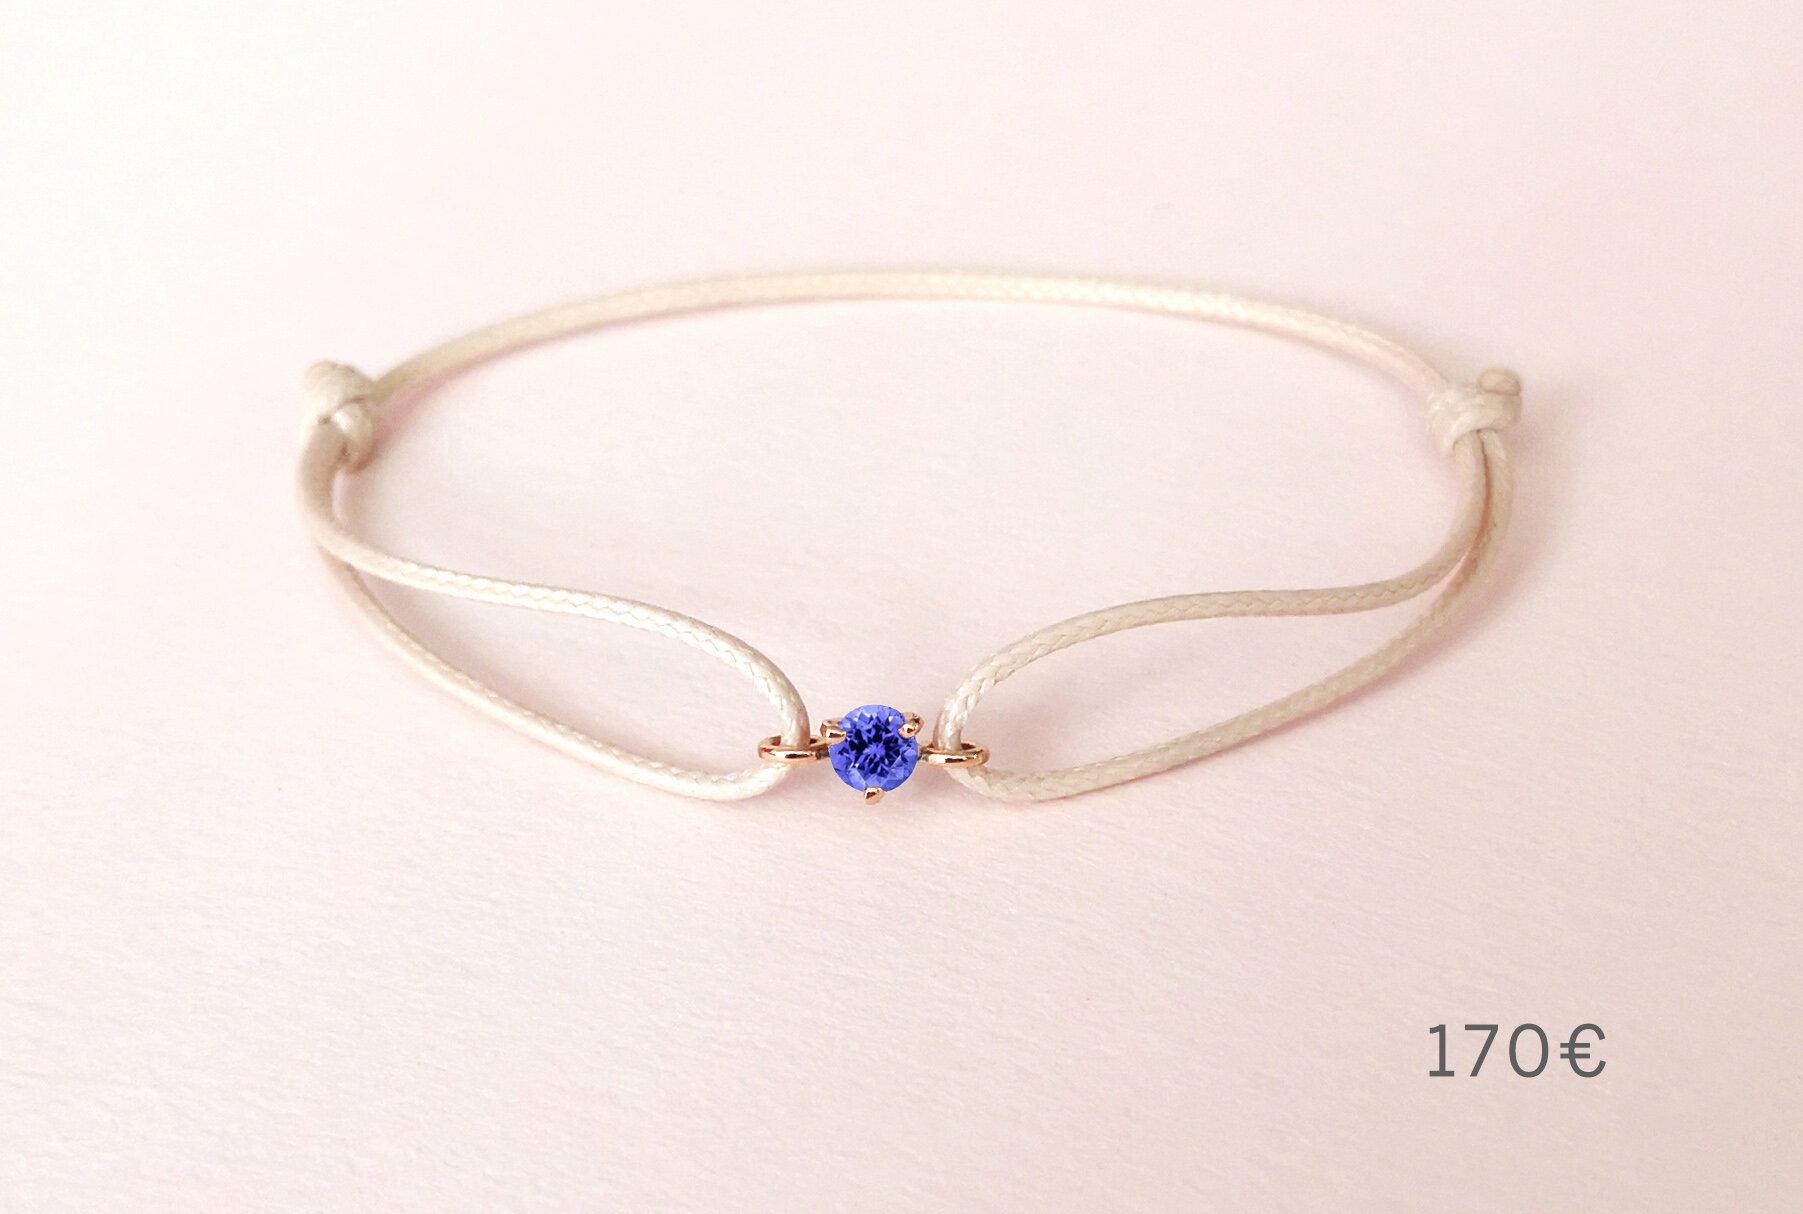 Bracelet Pause Goûter tanzanite, Collection Weekends Express - Courpré Joaillerie - The Explorative Fine Jewelry